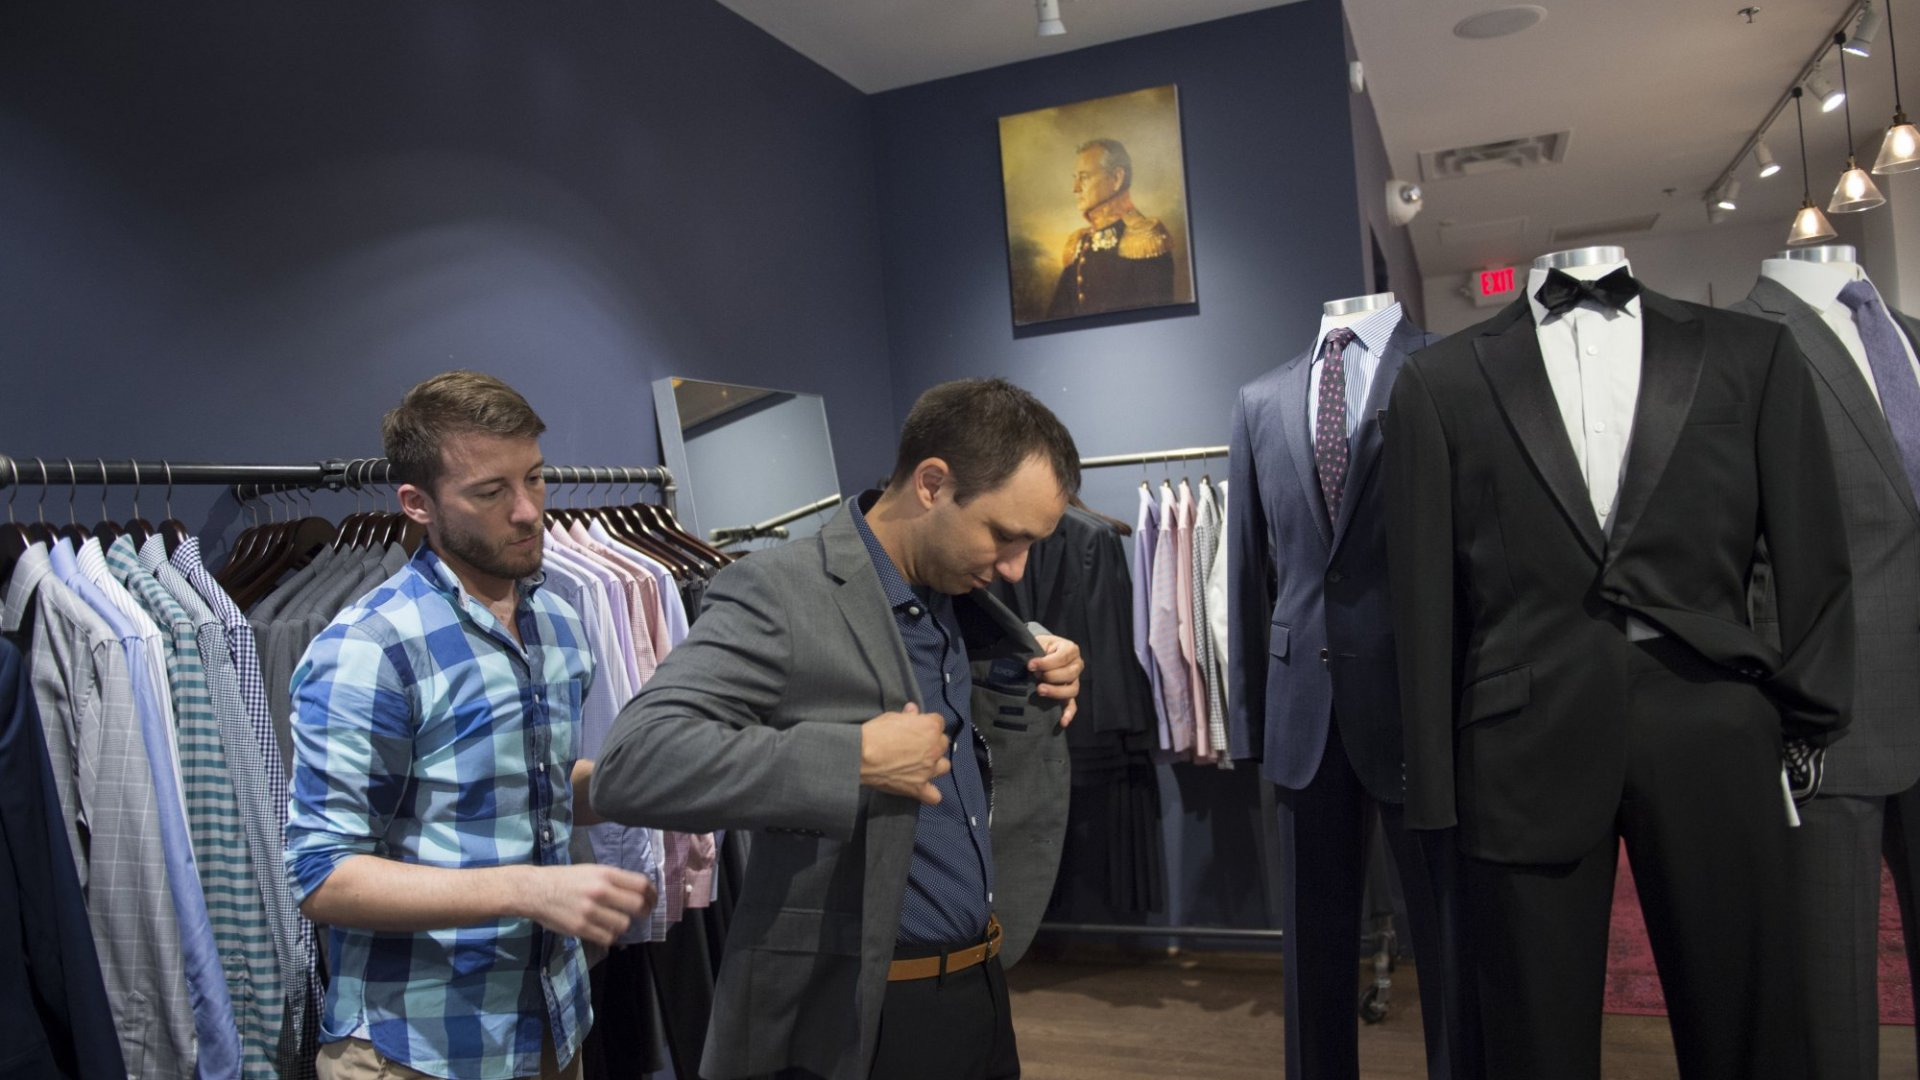 The Secret to Retail Success? No Stock or Inventory